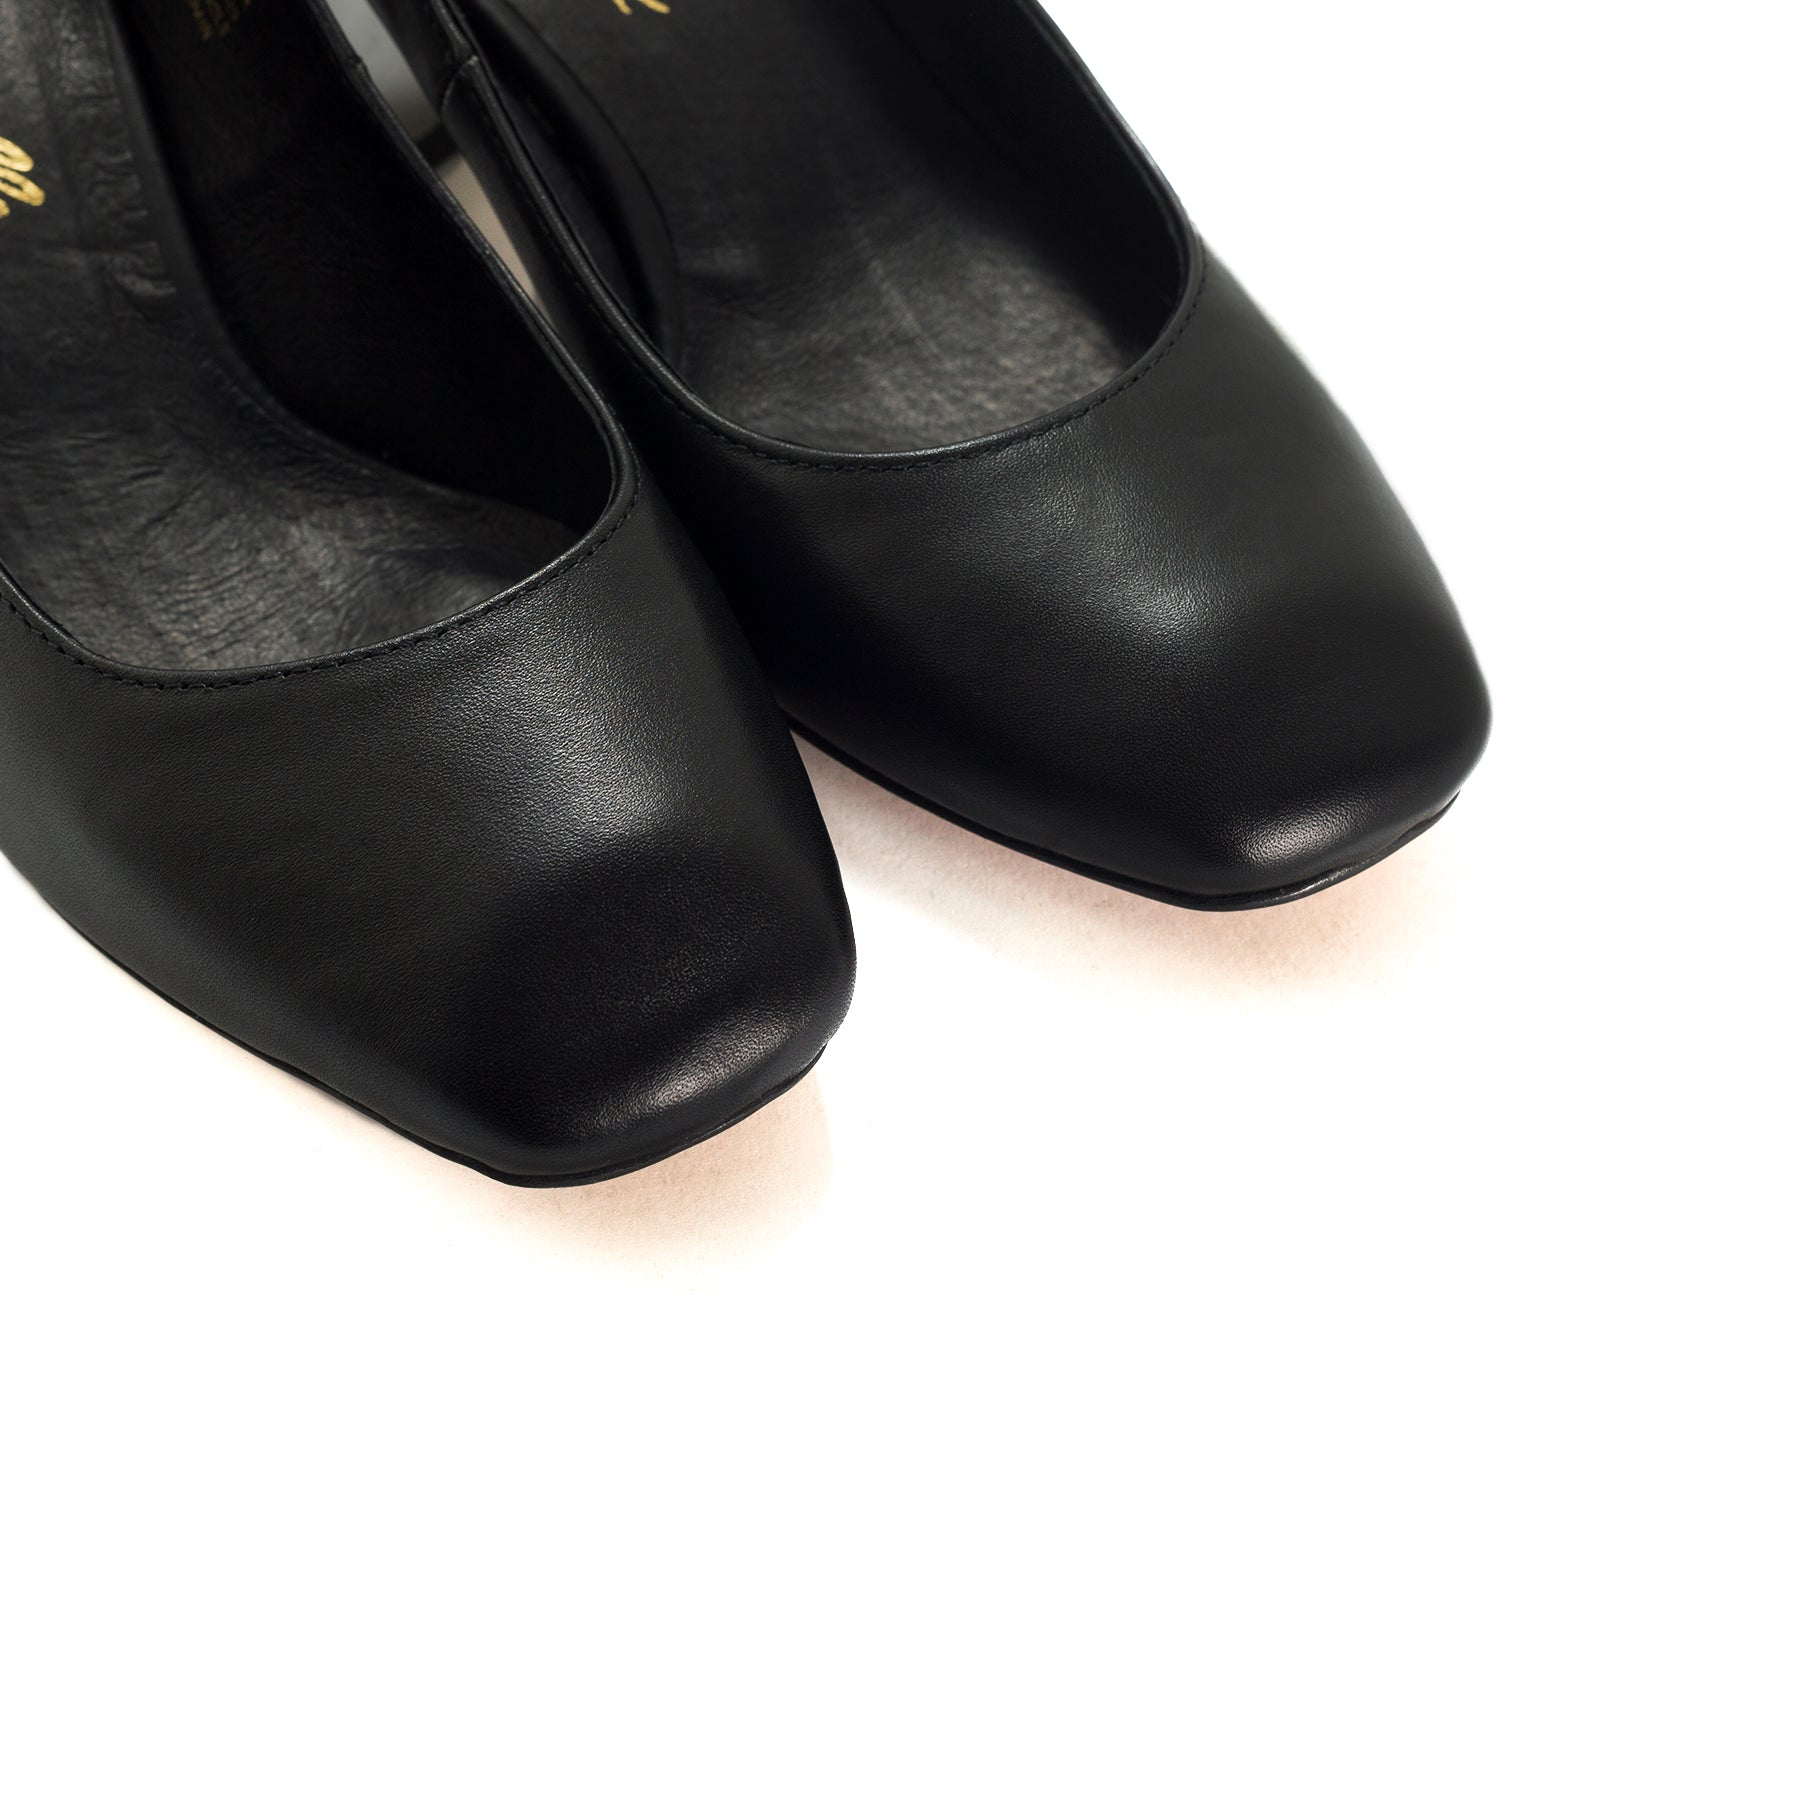 Raciel Black Leather Pumps